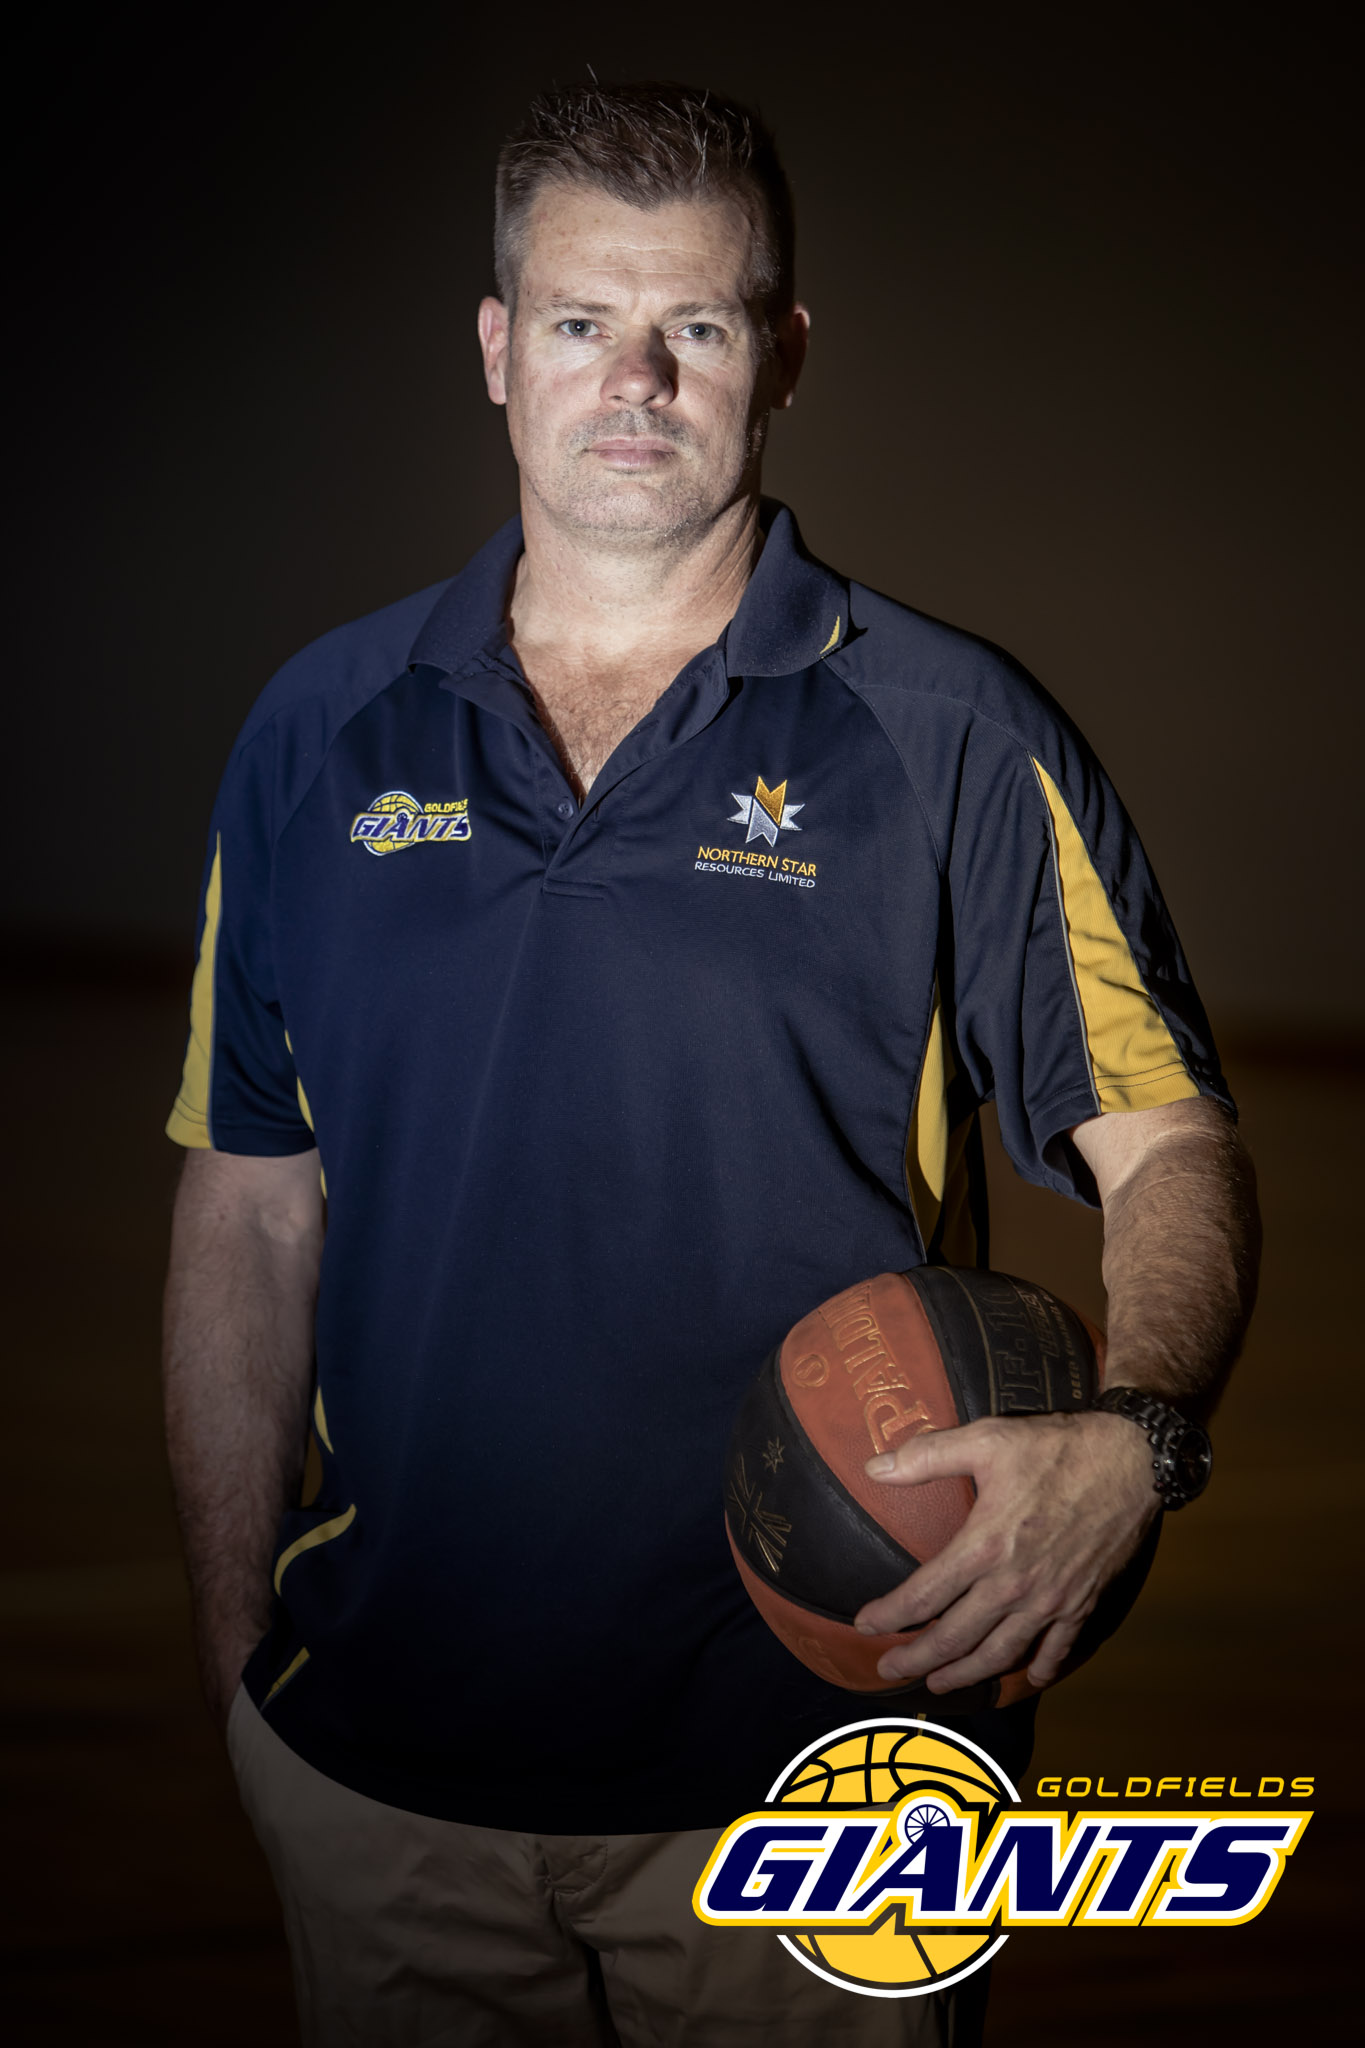 New Goldfields Giants chairman Russell Duncan.